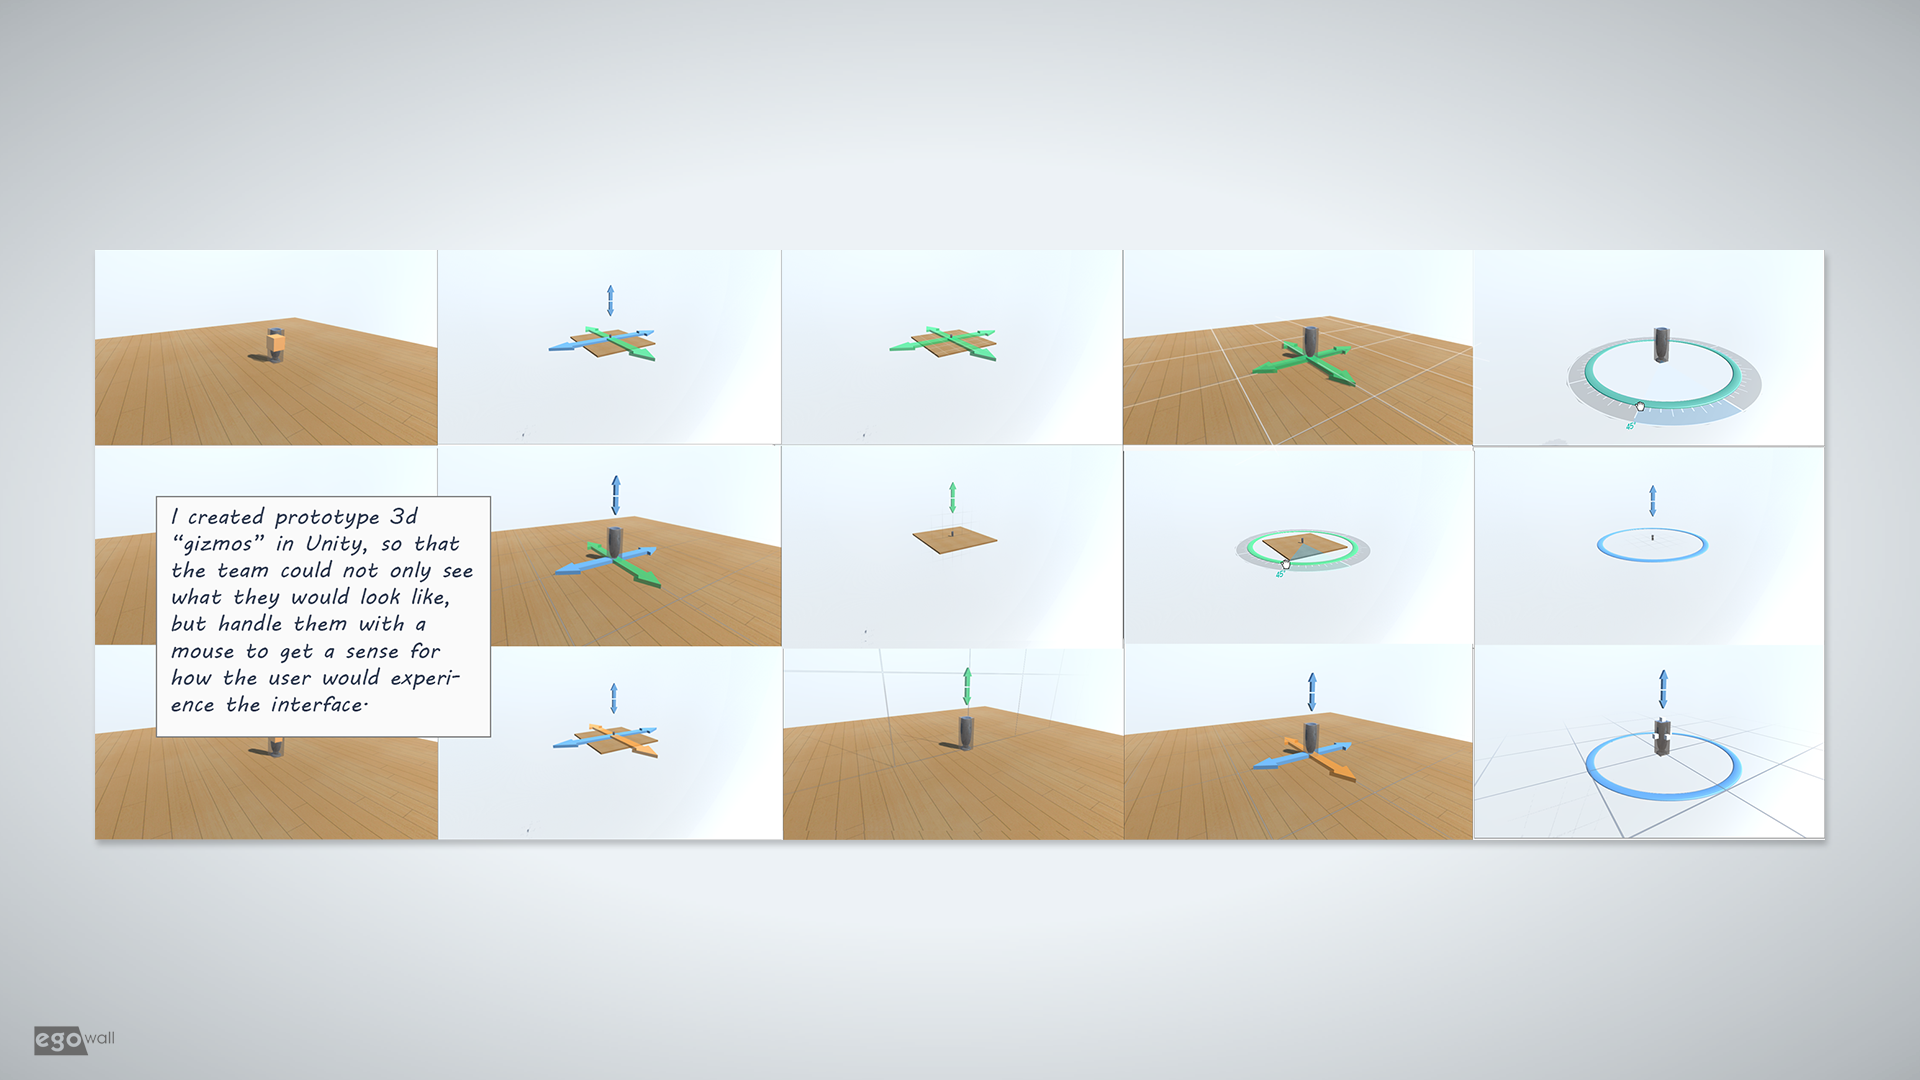 Prototype 3d object manipulation interfaces.